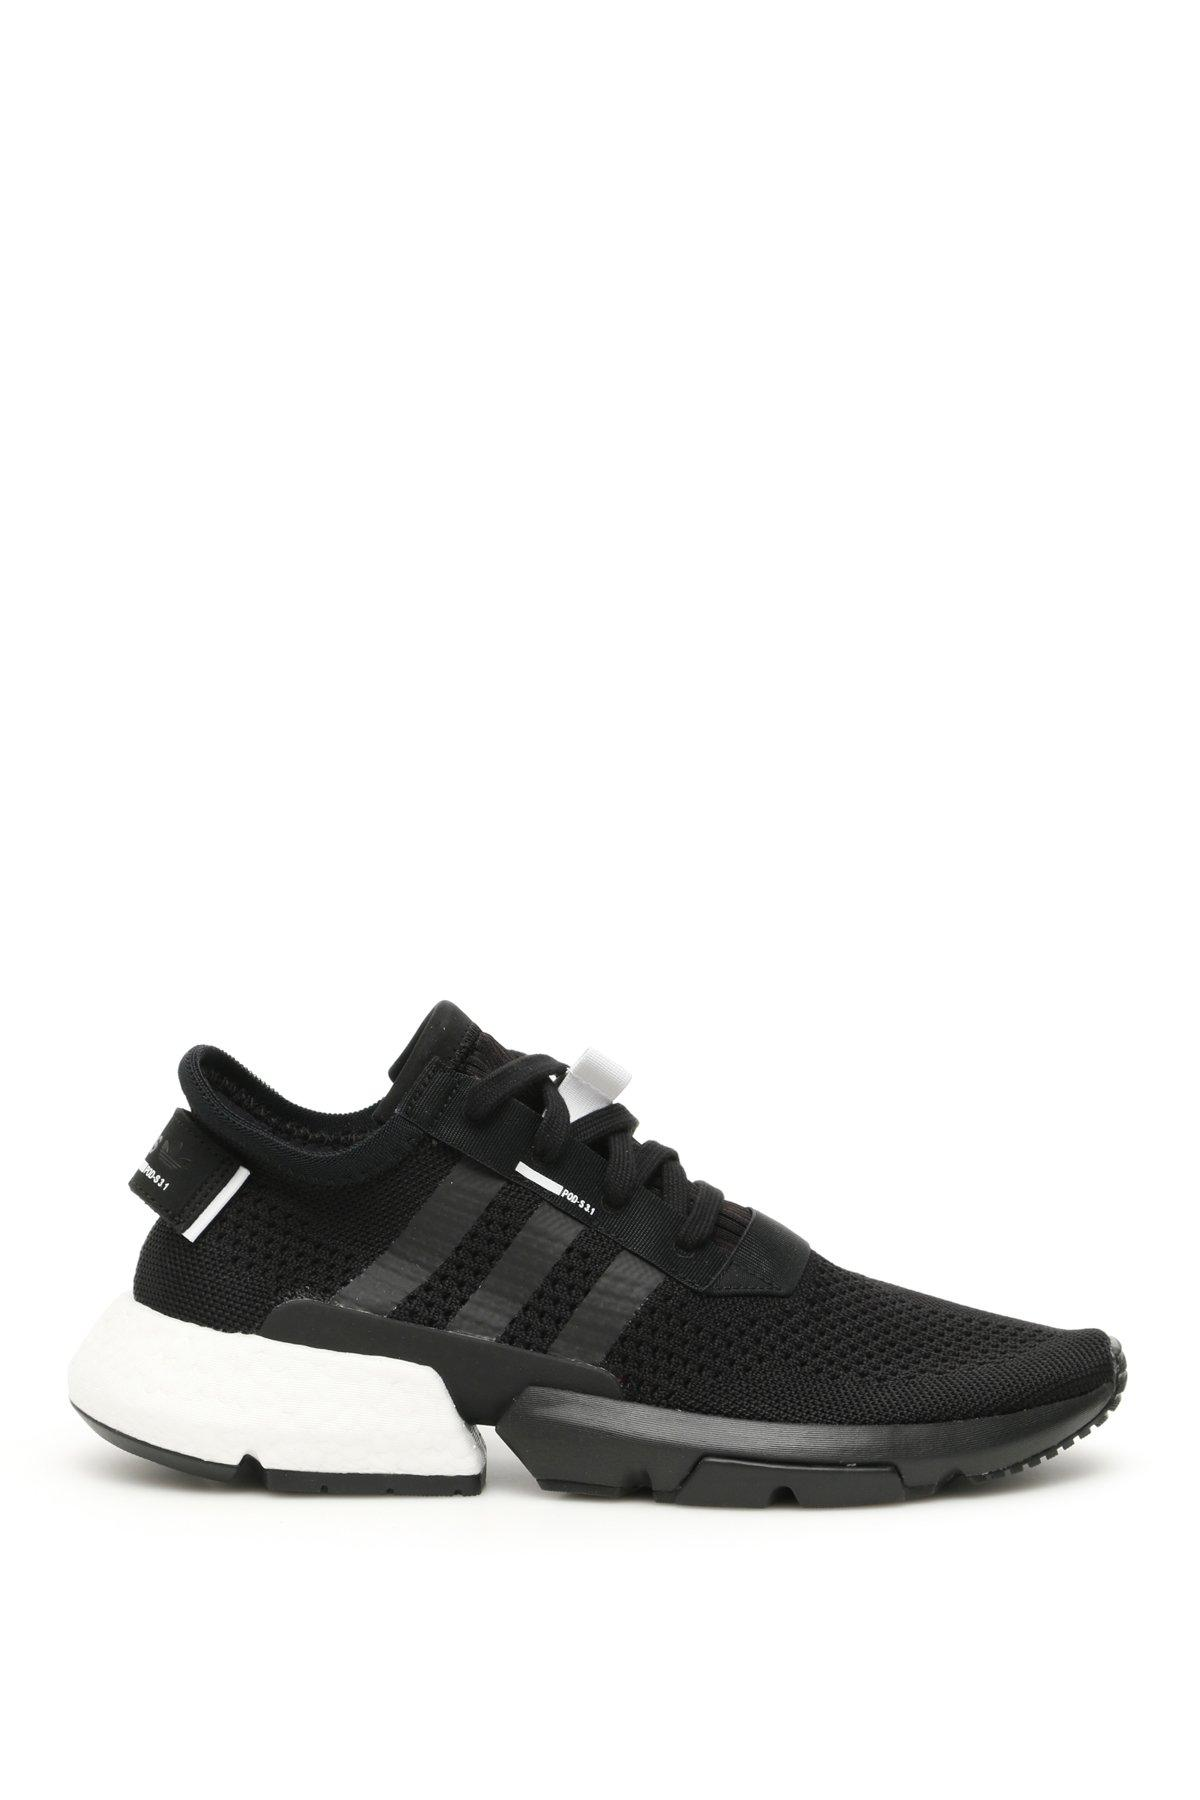 adidas Pod-s3.1 Shoes in Black for Men - Lyst